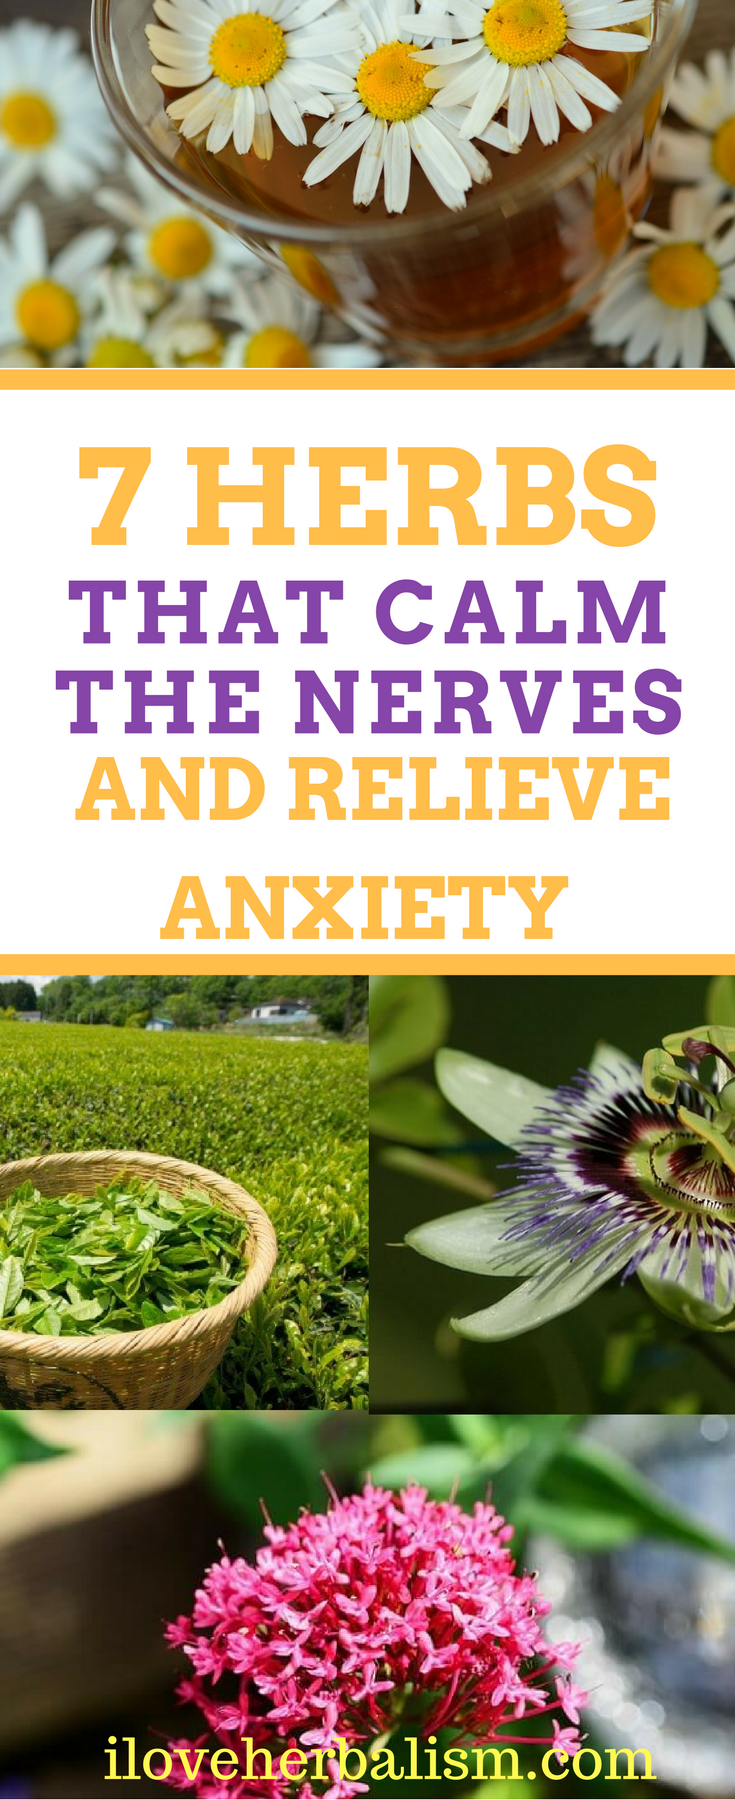 7 herbs that calm the nerves and relieve anxiety naturally | herbal